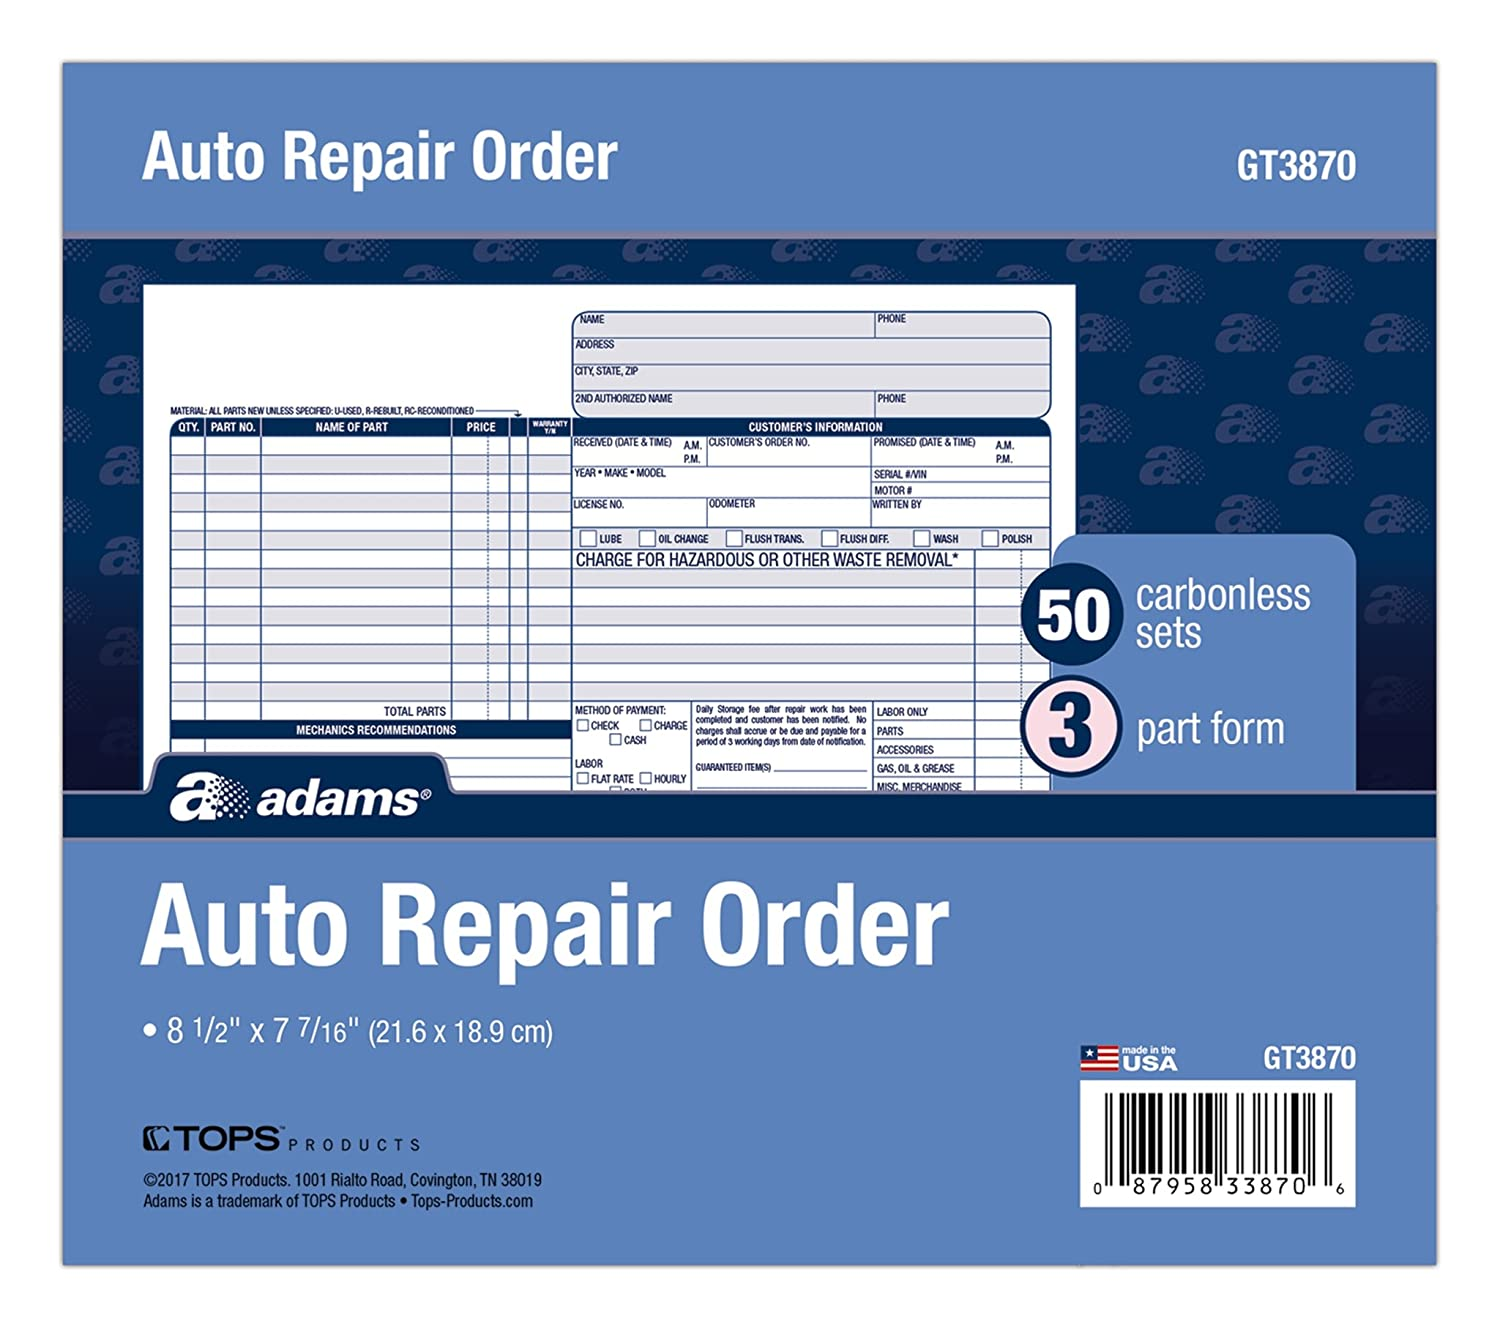 Adams Auto Repair Order Forms, 8.5 x 7.44 Inch, 3-Part, Carbonless, 50-Pack, White and Canary (GT3870) TOPS Business Forms Inc.